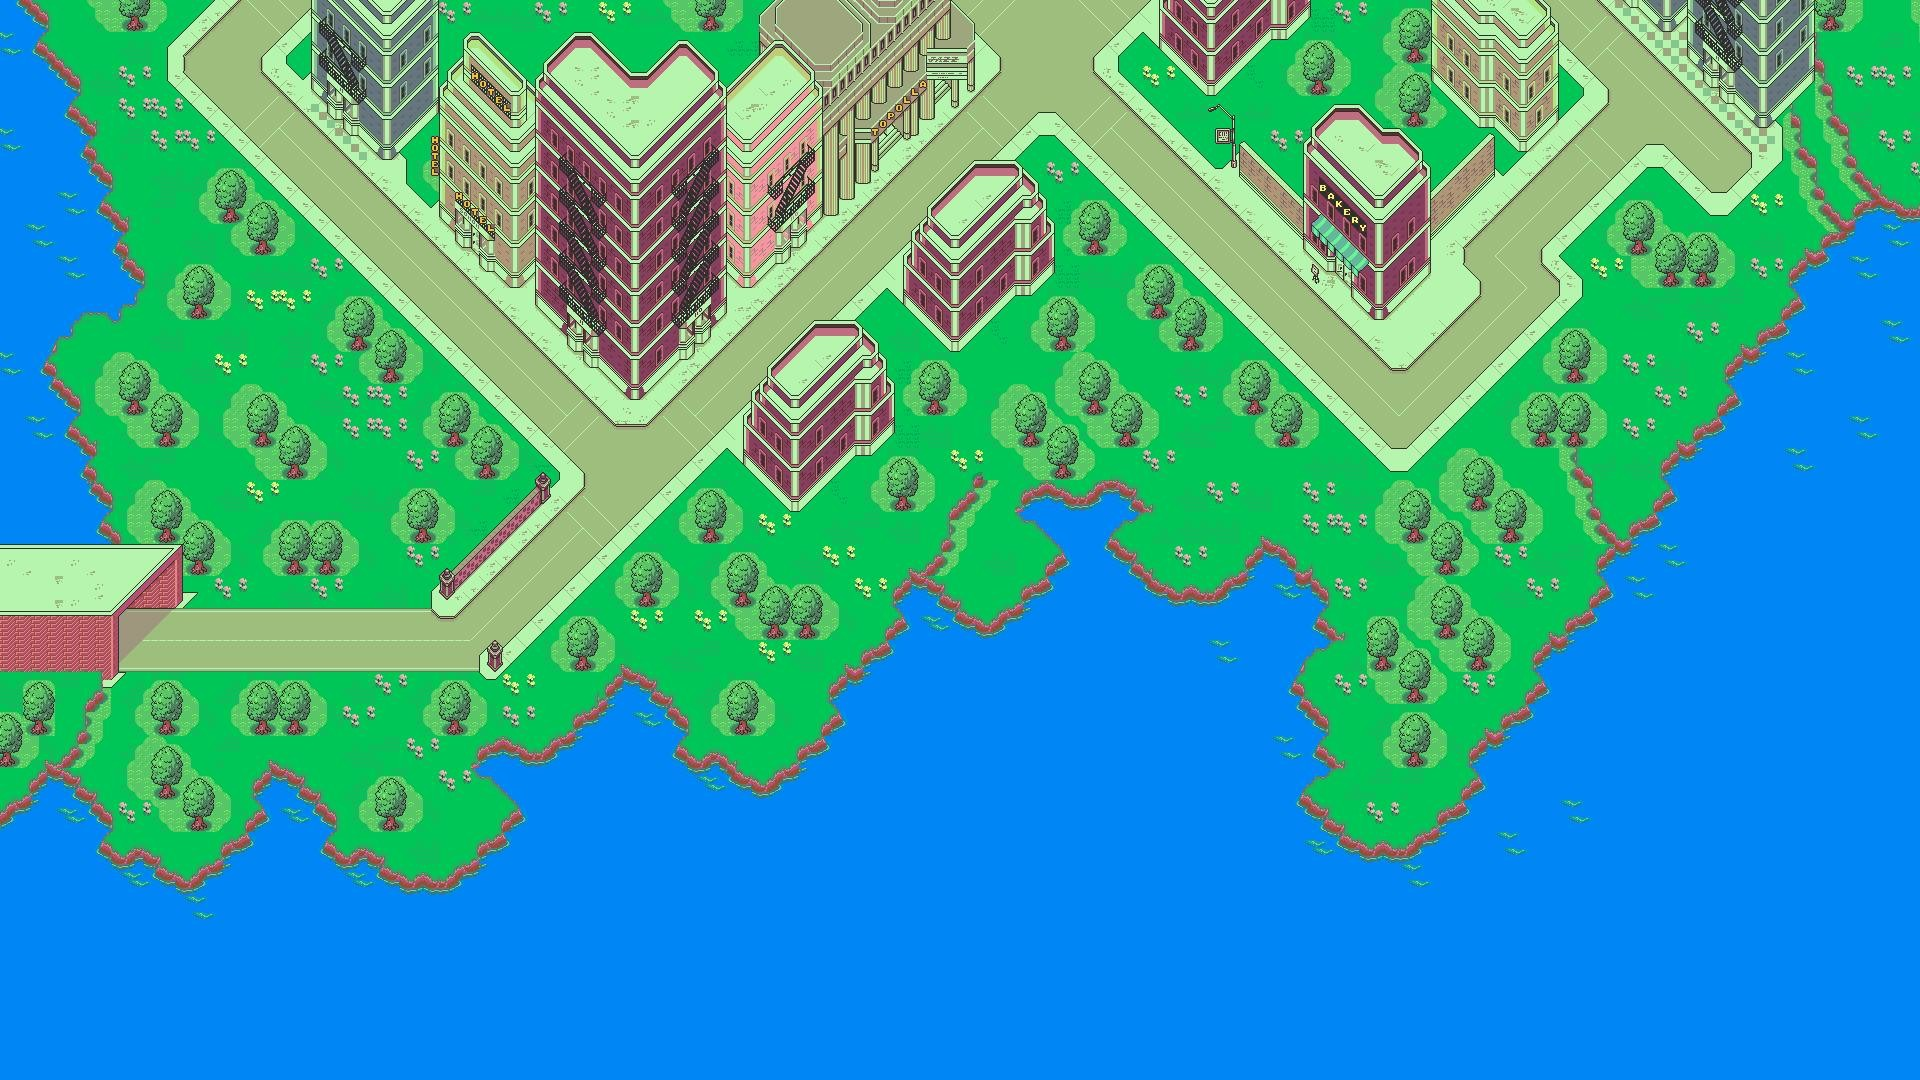 HD-Earthbound-Video-Games-Cityscapes-Mother-Pixelart-Super-